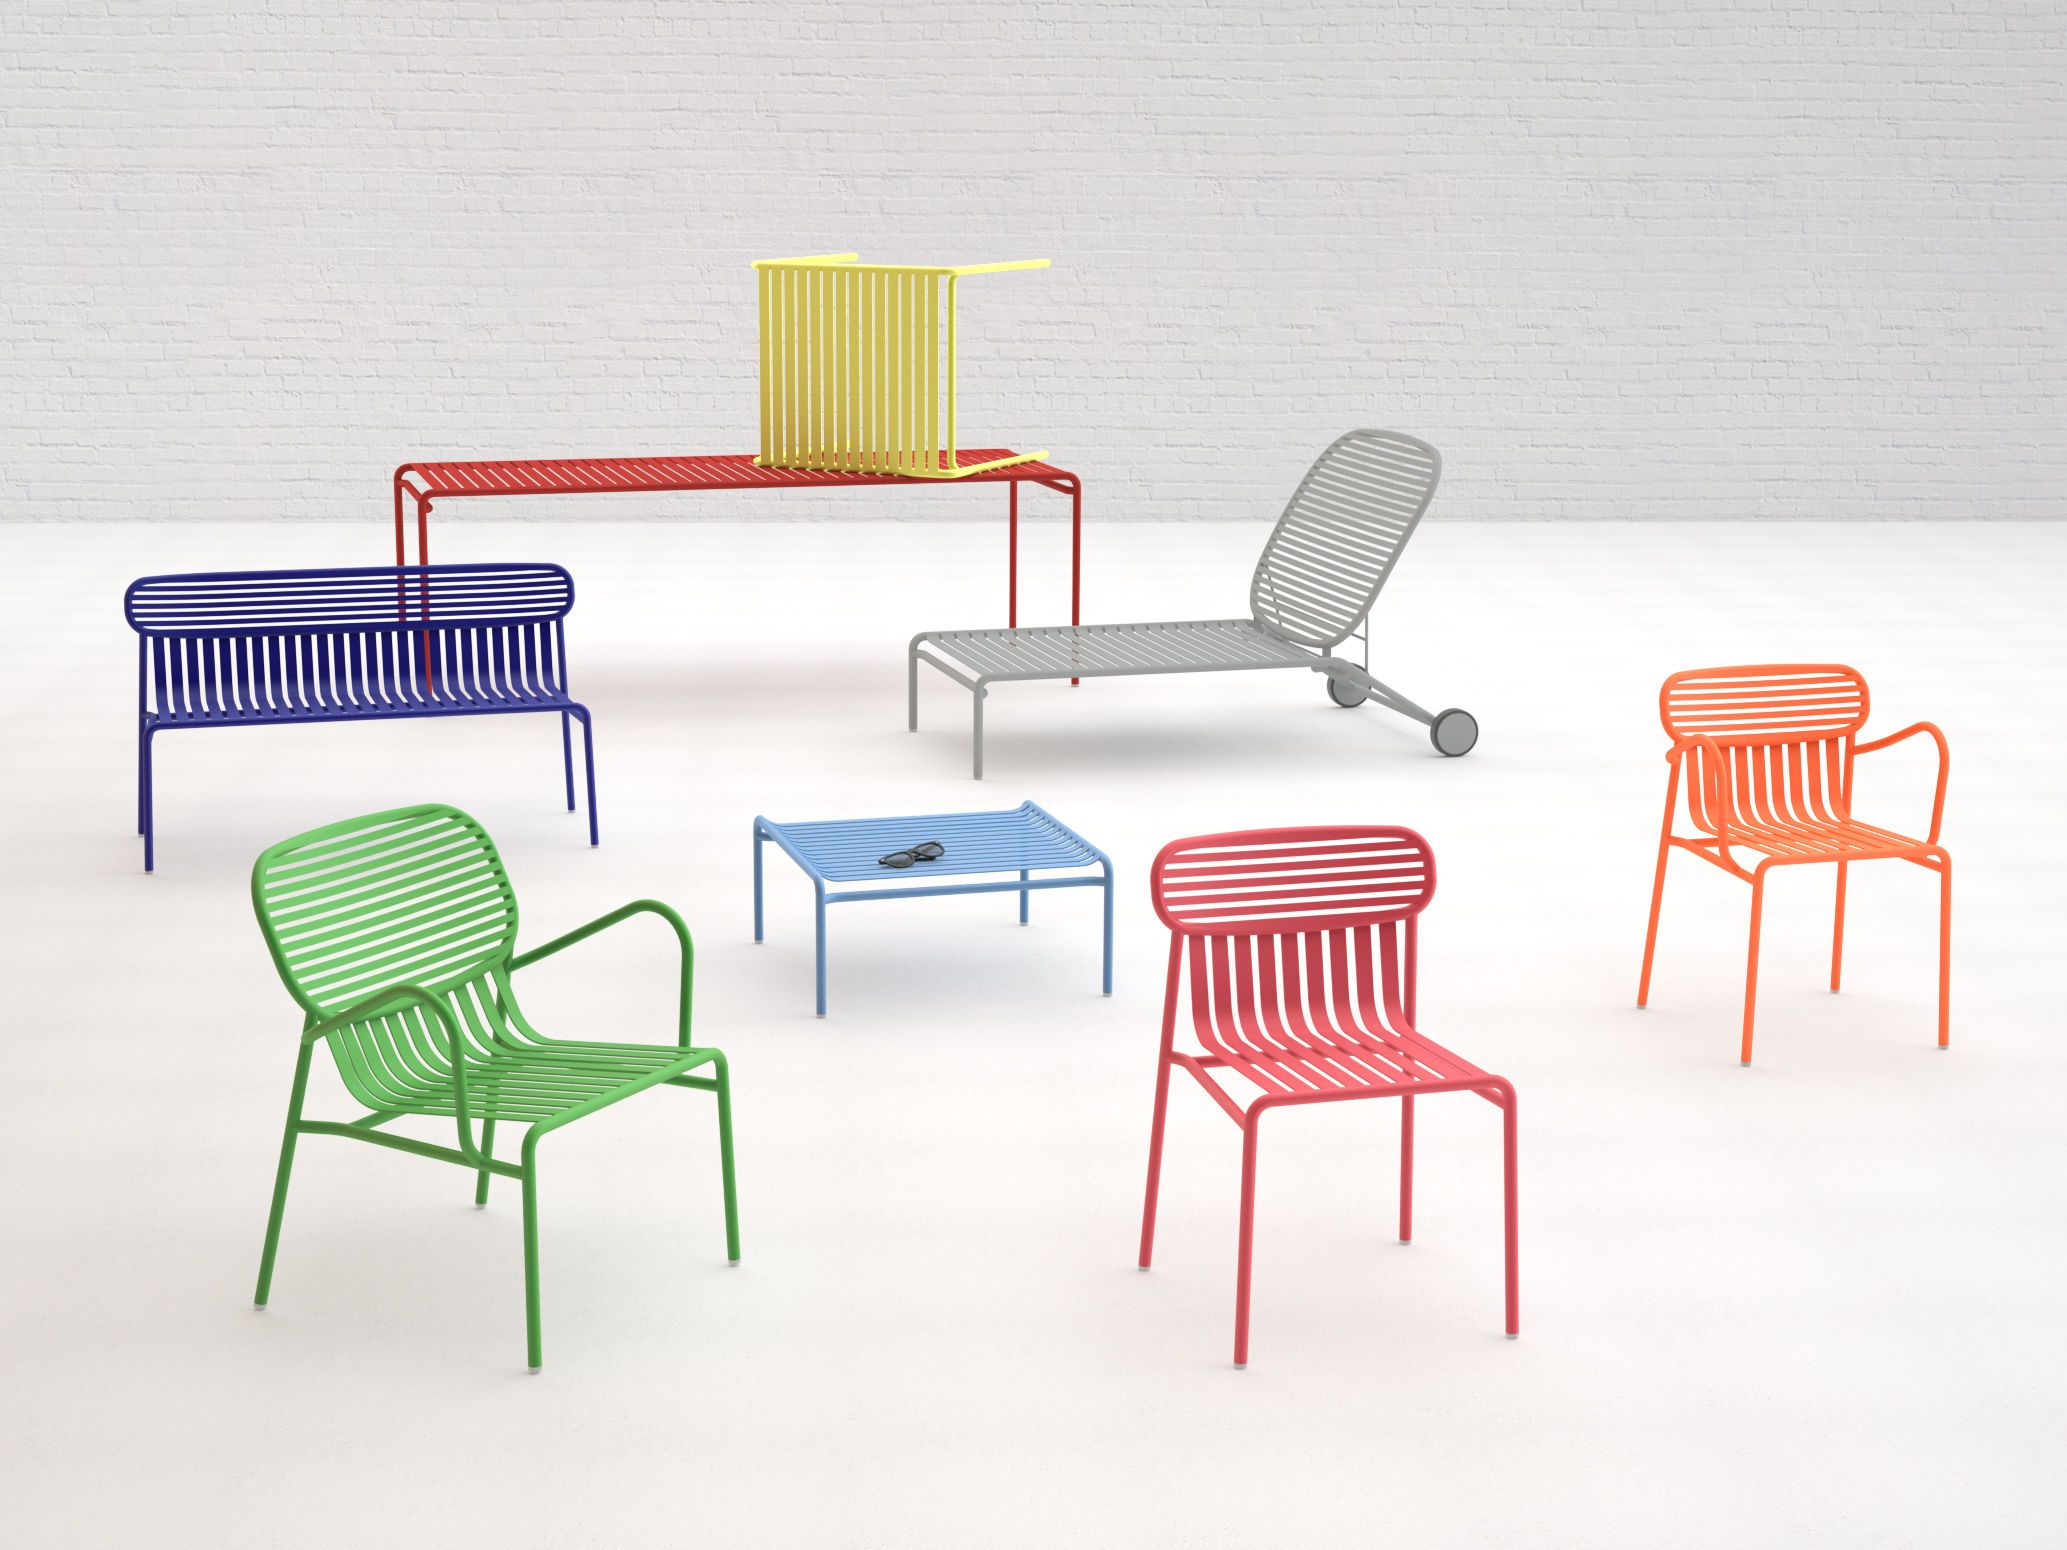 Le mobilier de jardin Week end by Oxyo